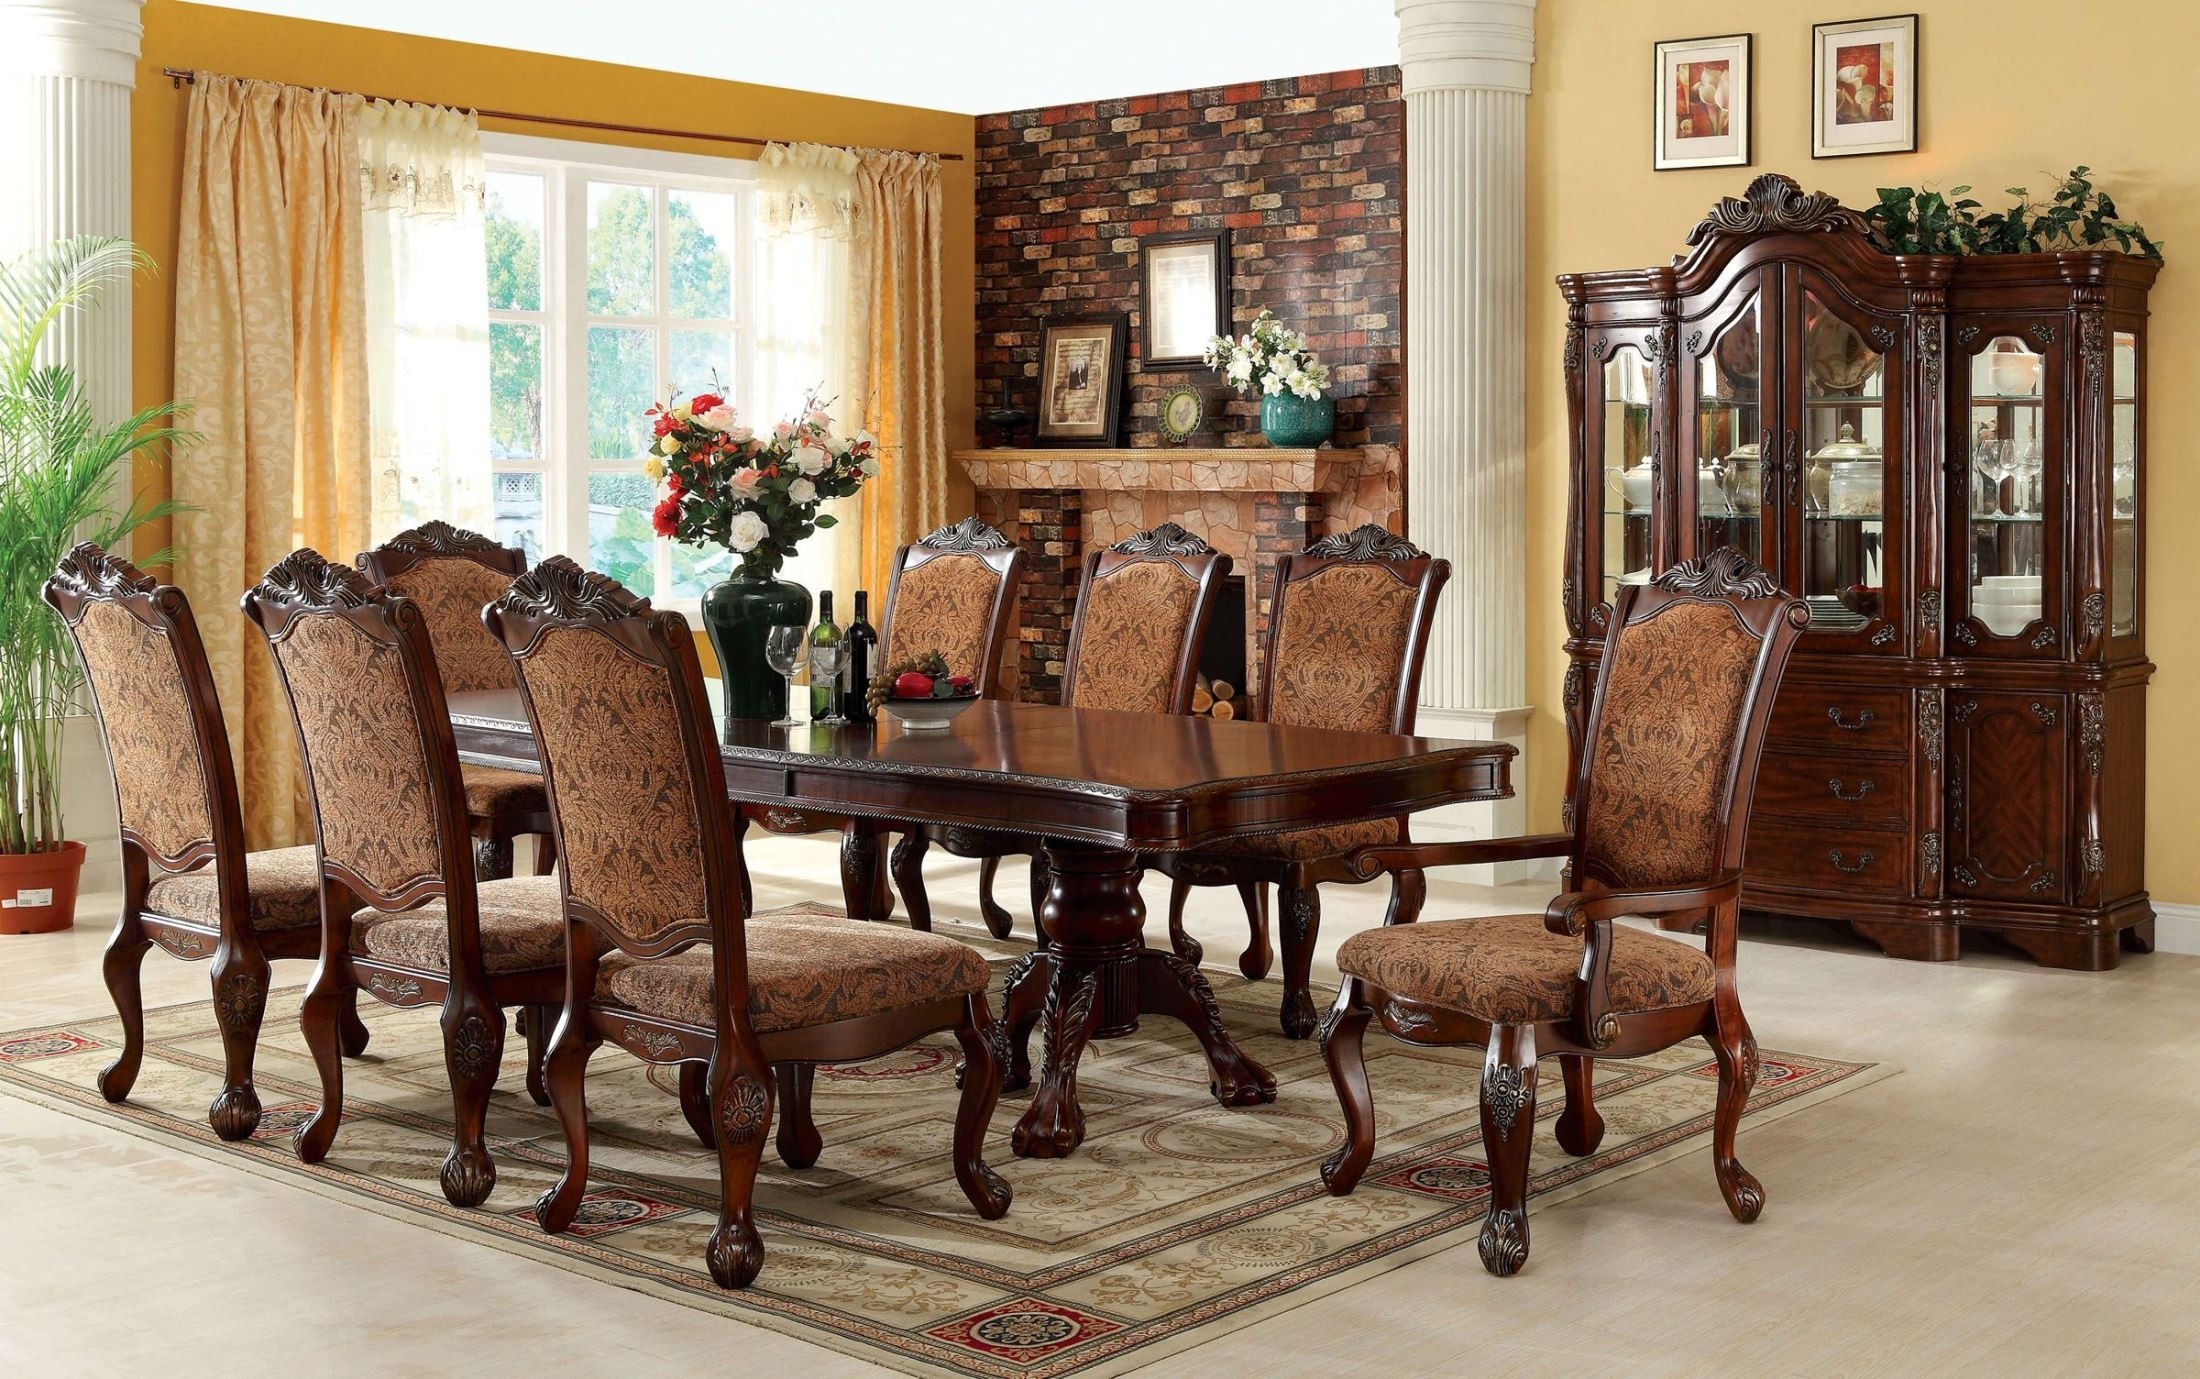 Cromwell antique cherry formal dining room set cm3103t for Dining room furniture